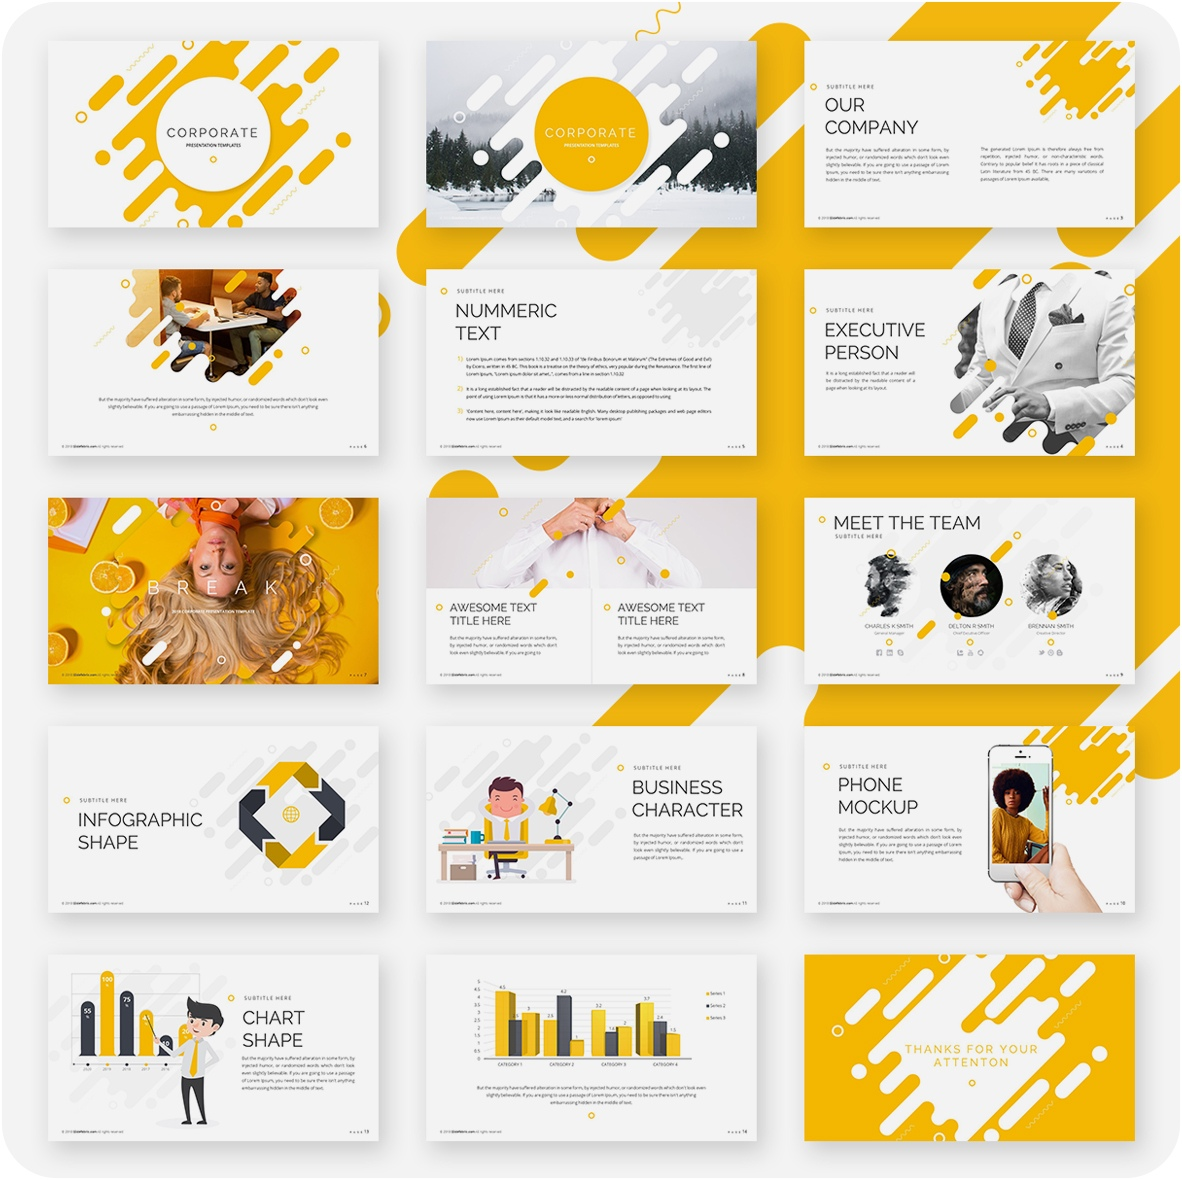 Meet The Team Powerpoint Template Free Download